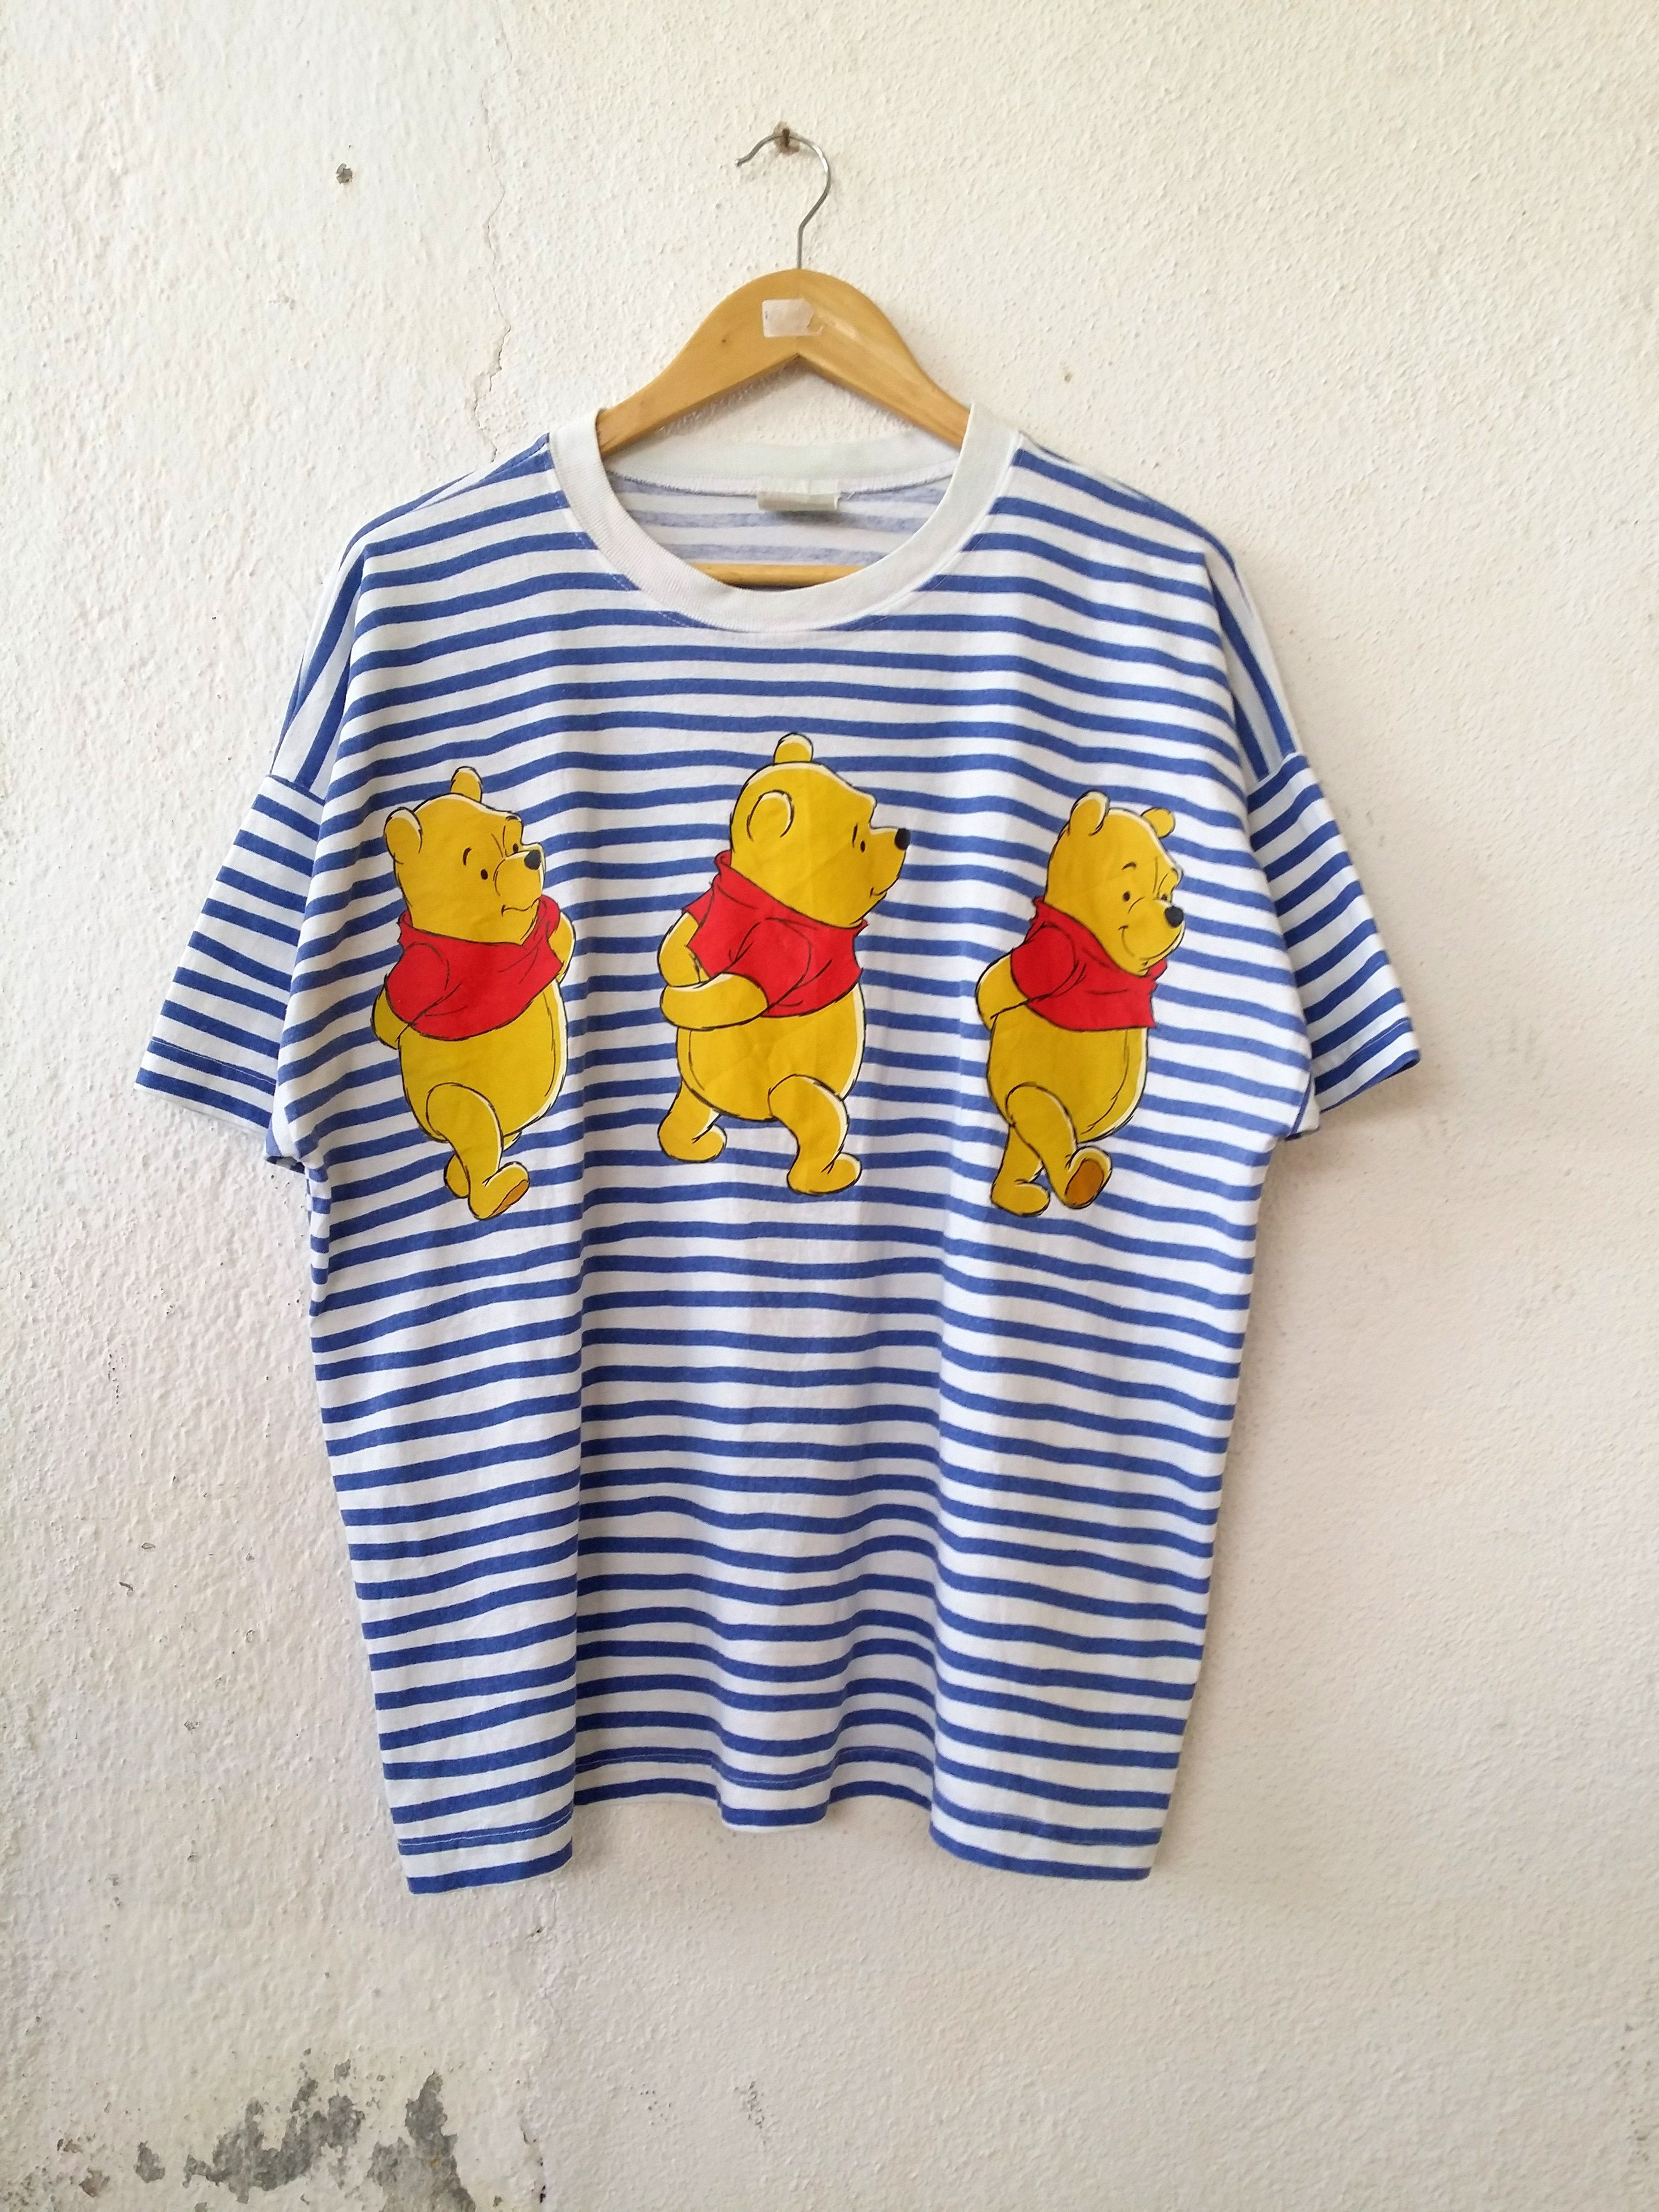 45e9b7850b0a Winnie Pooh Shirt DISNEY s Striped Tee Streetwear Size XL ...